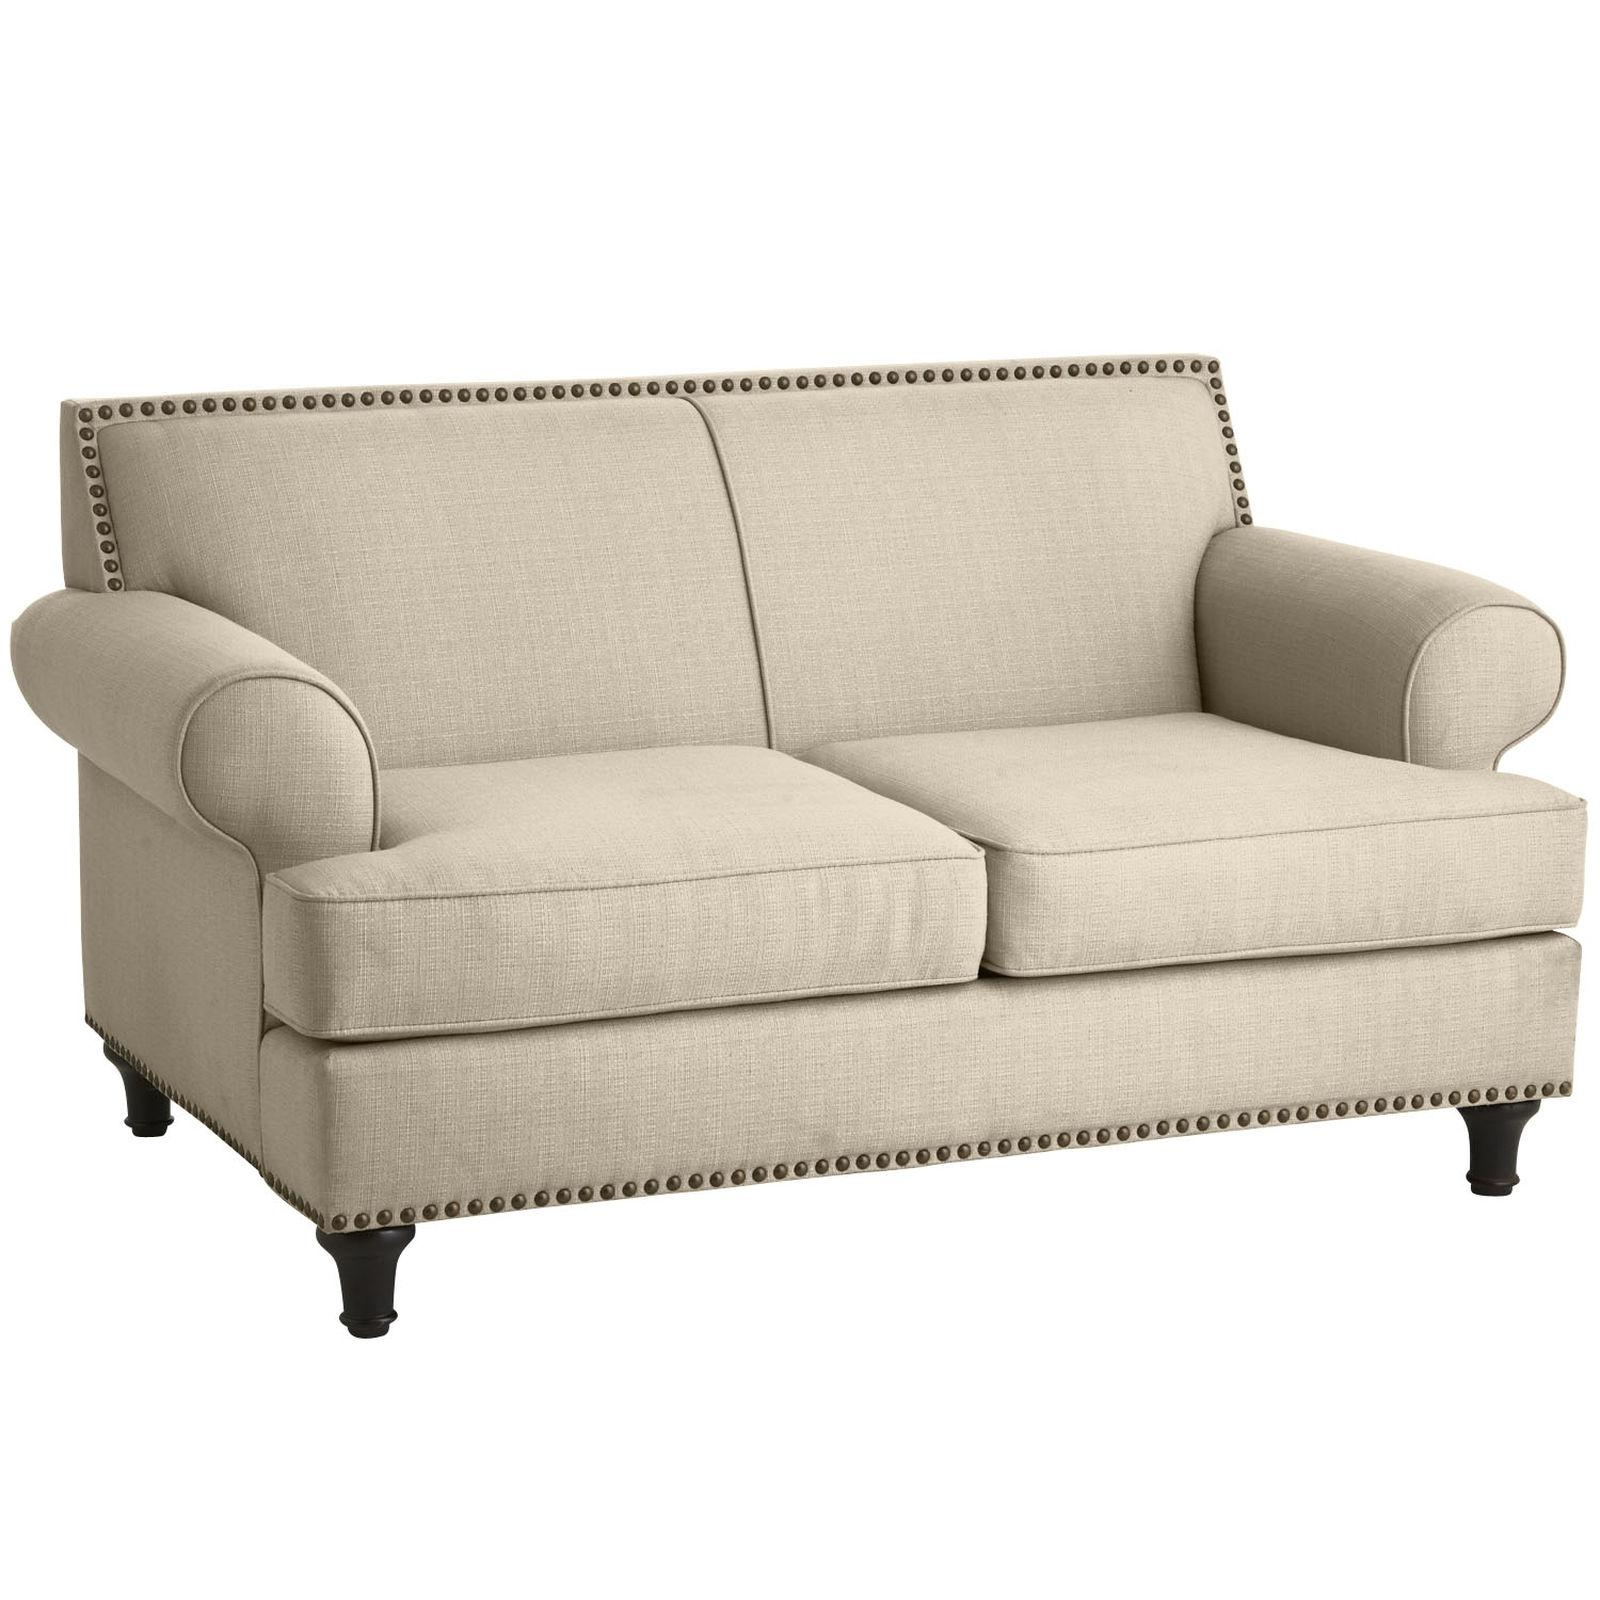 Featured Image of Pier 1 Sofa Beds